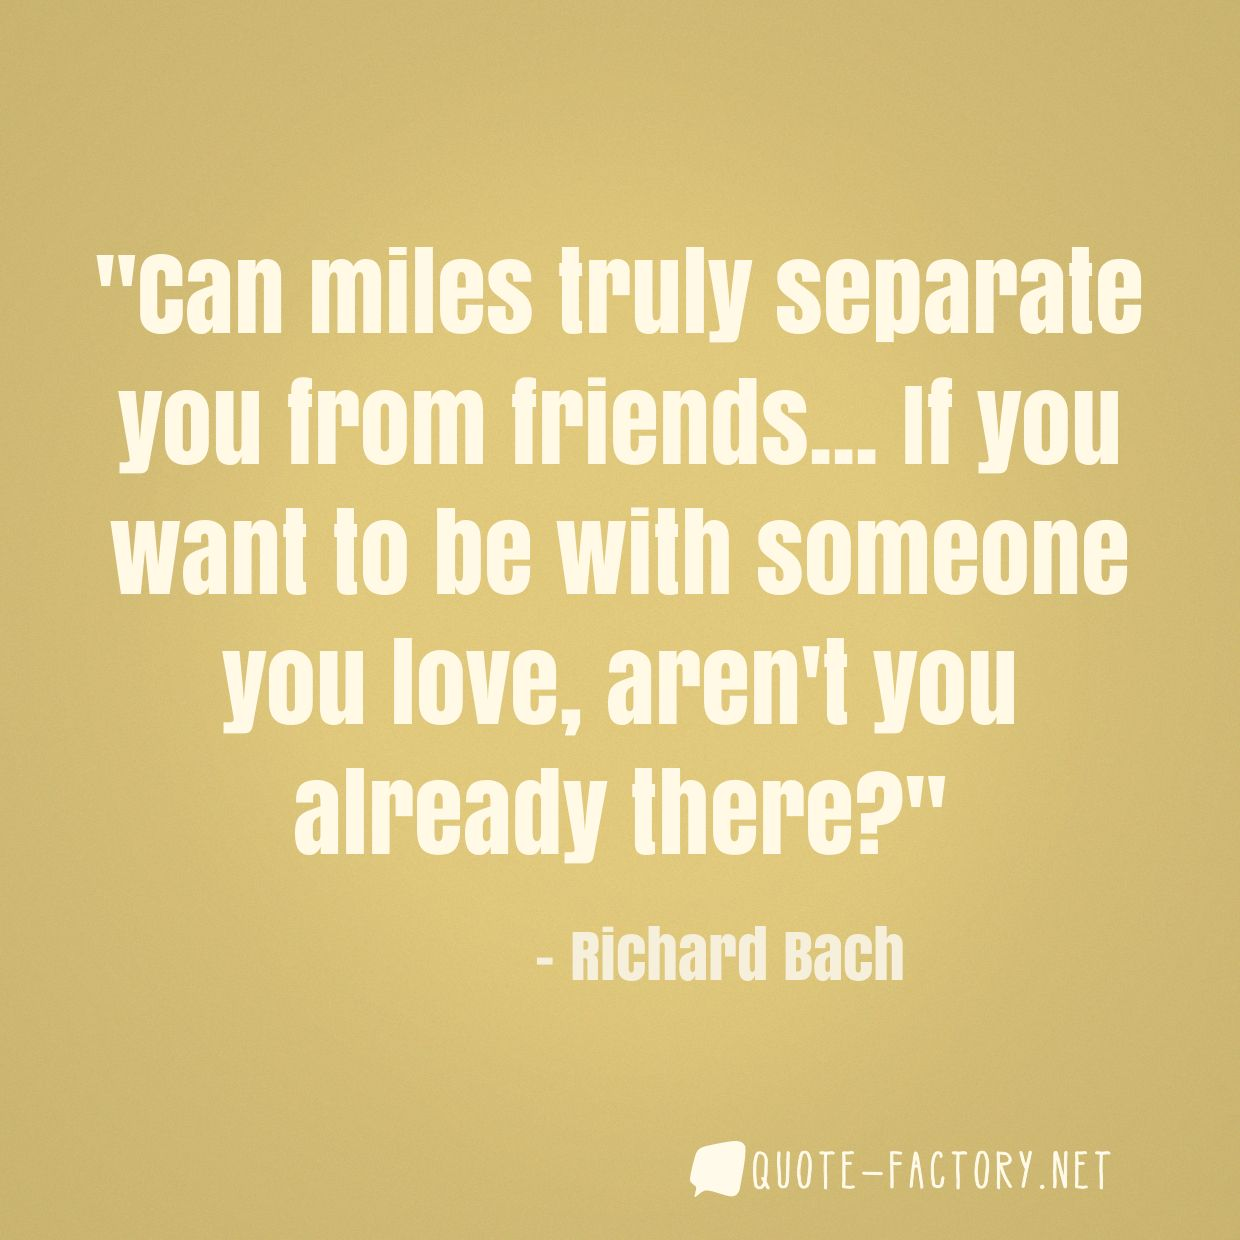 Can miles truly separate you from friends... If you want to be with someone you love, aren't you already there?